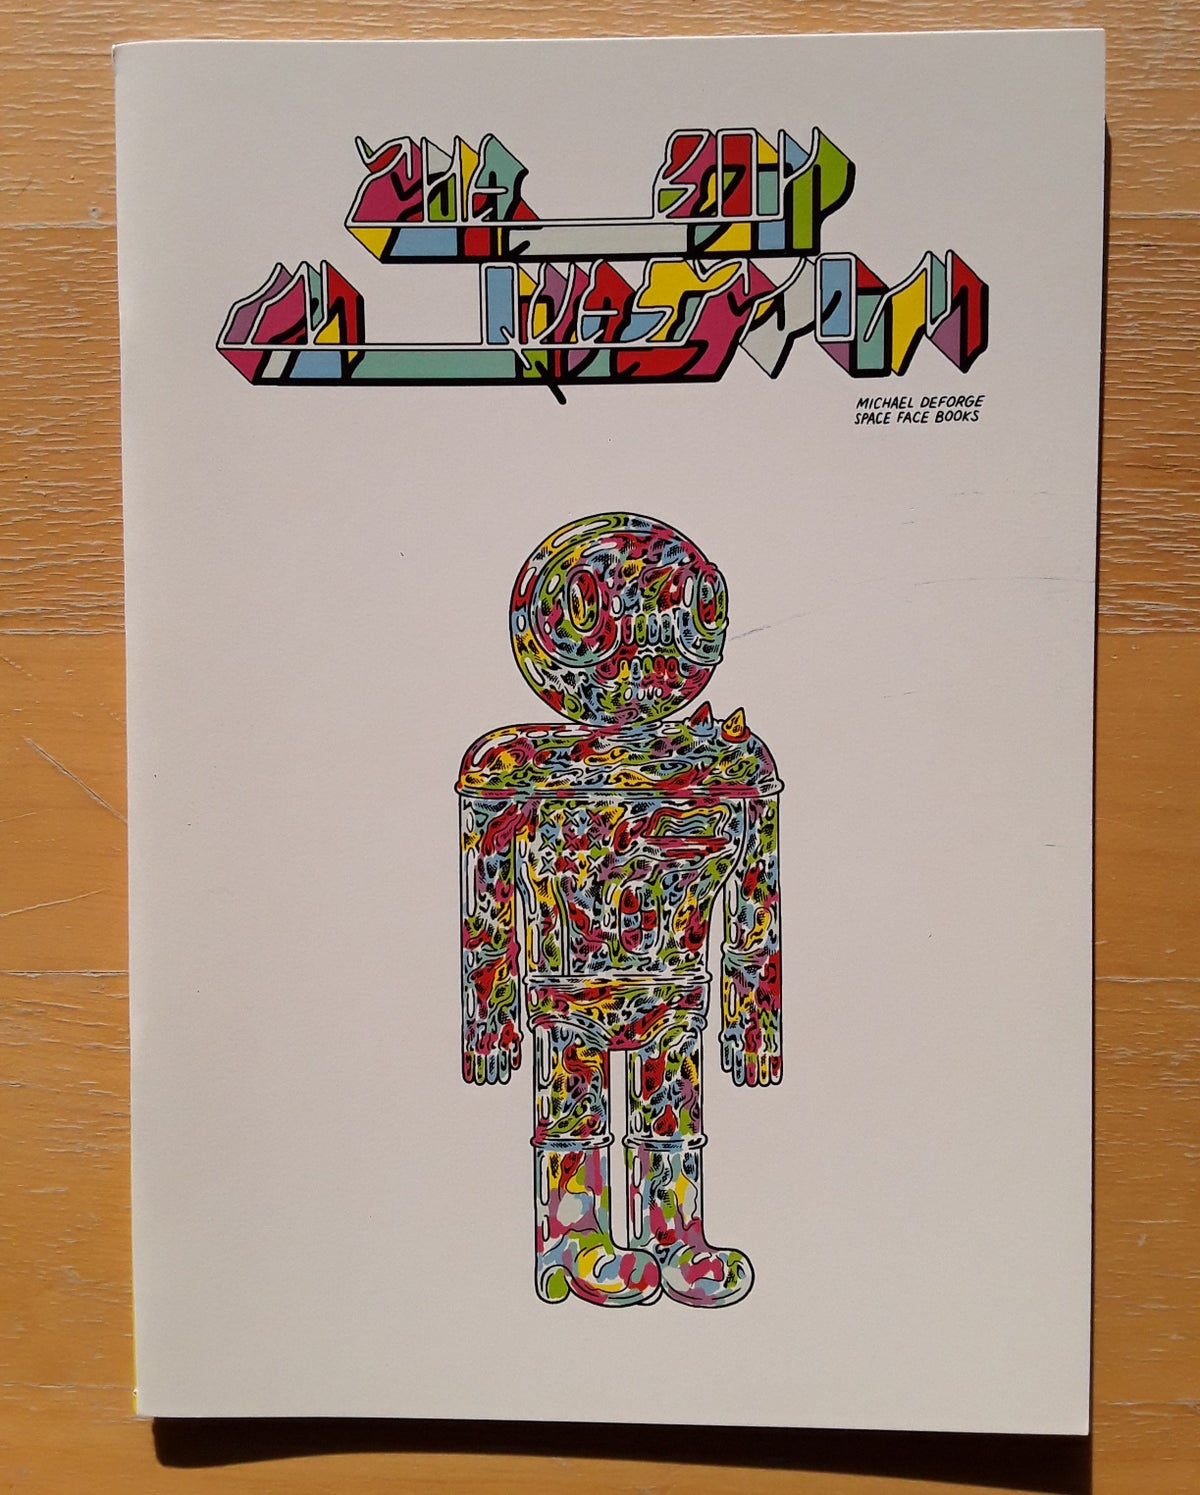 Image of The Boy in Question by Michael DeForge